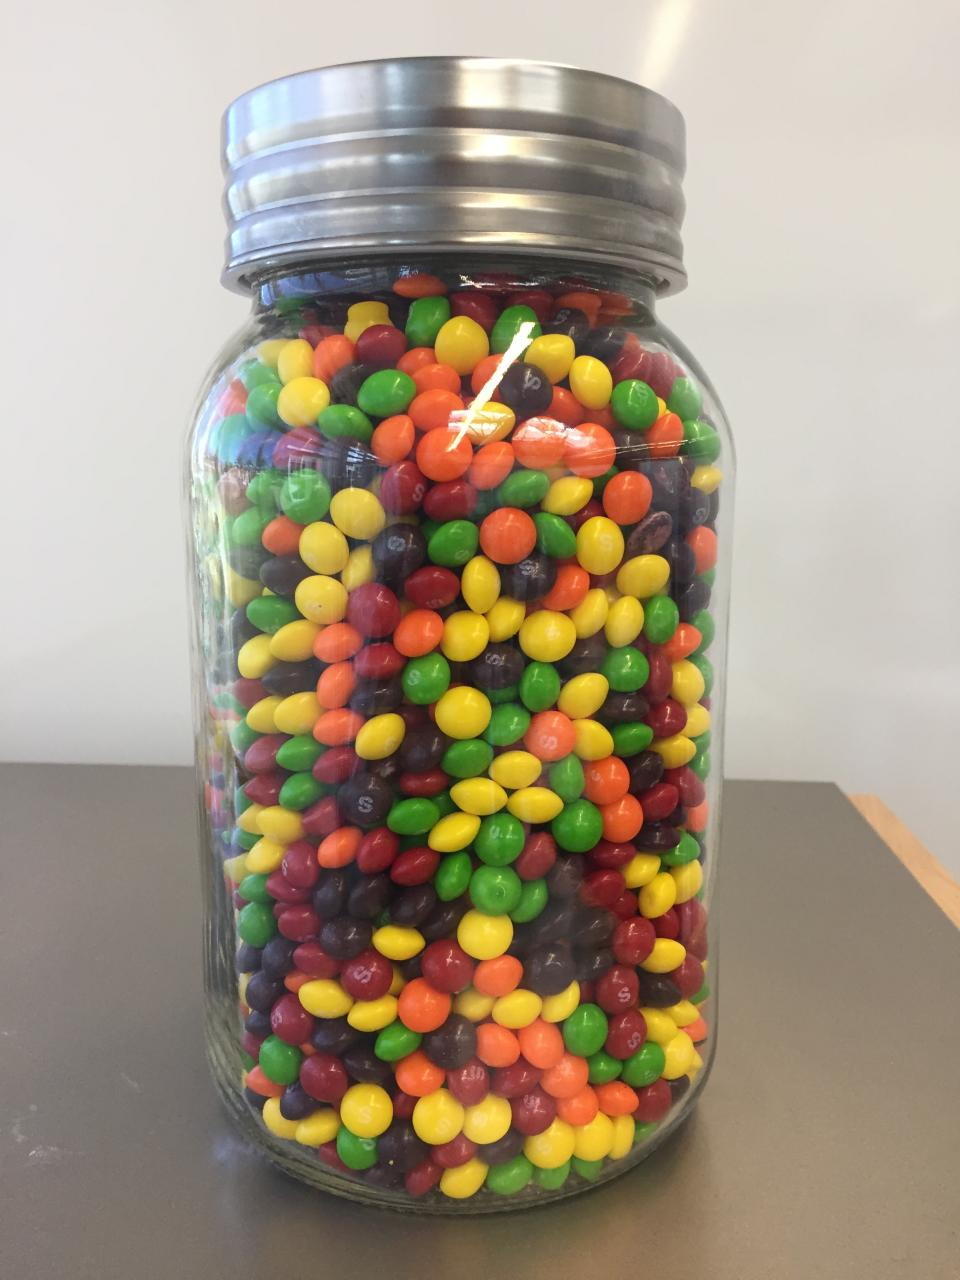 How many Skittles are in the jar? - ppt download